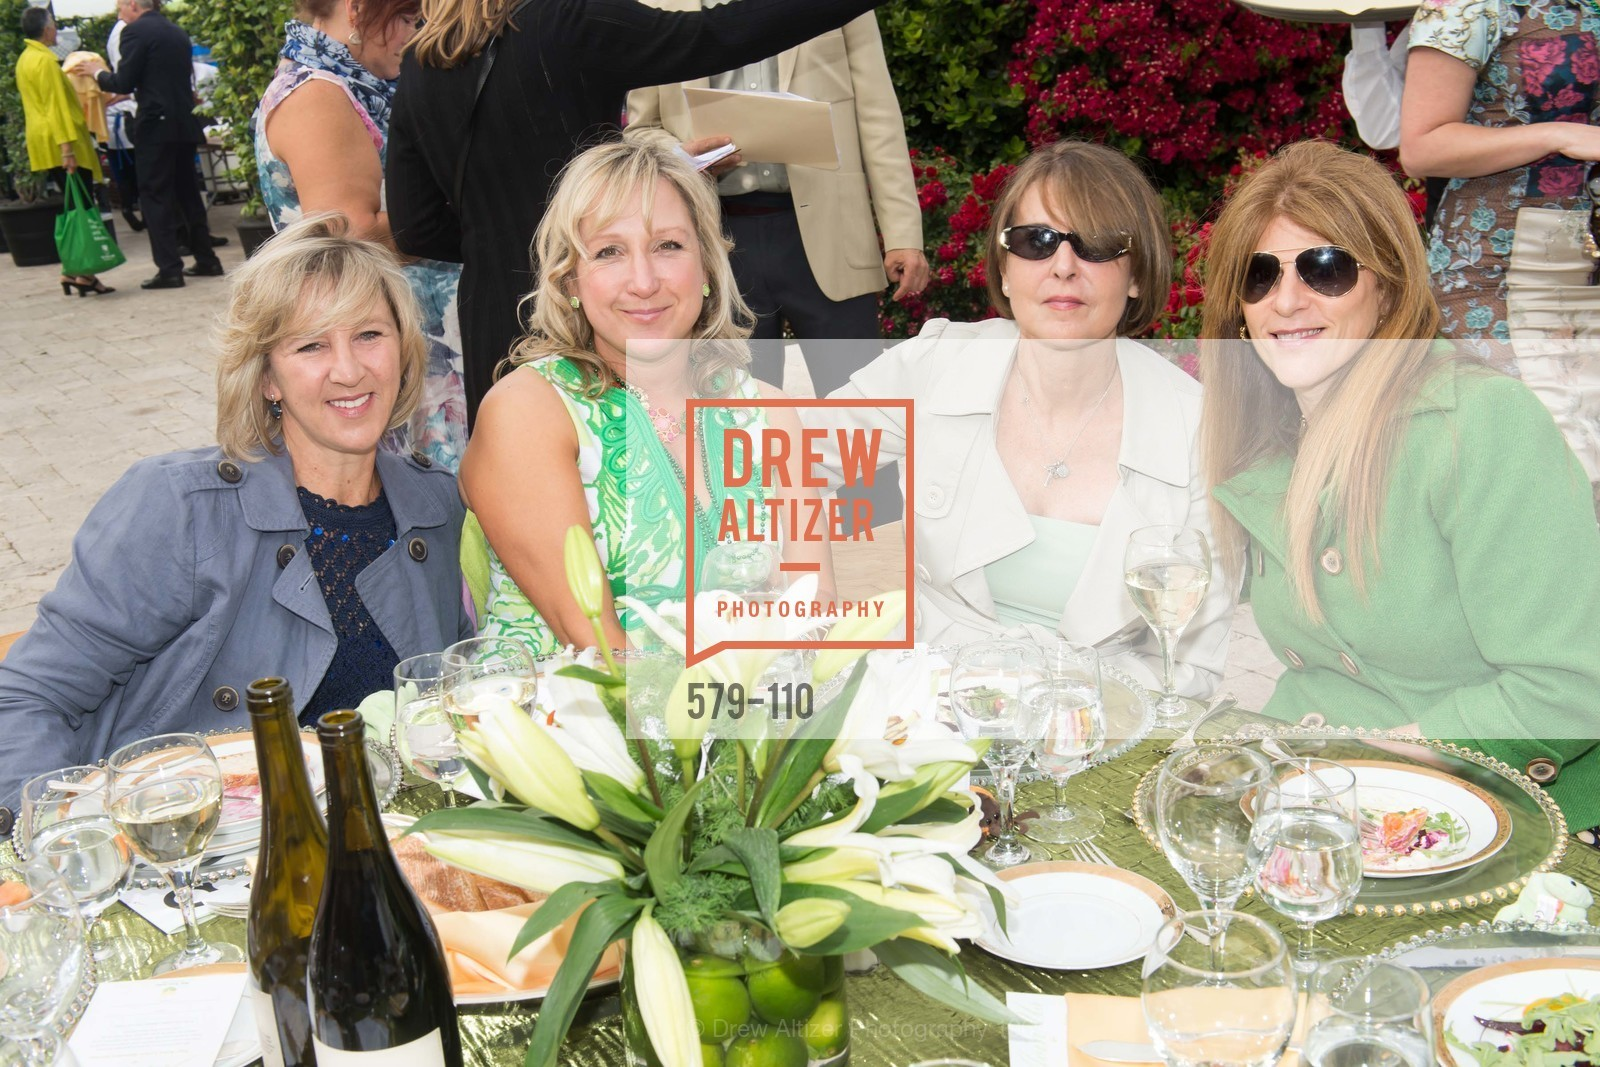 Jane Wilson, Princess Julia Shaw, Karen Wesley, Marti Sterns, LYME AID 2015 Benefiting the Bay Area Lyme Foundation, Private Residence, May 16th, 2015,Drew Altizer, Drew Altizer Photography, full-service agency, private events, San Francisco photographer, photographer california